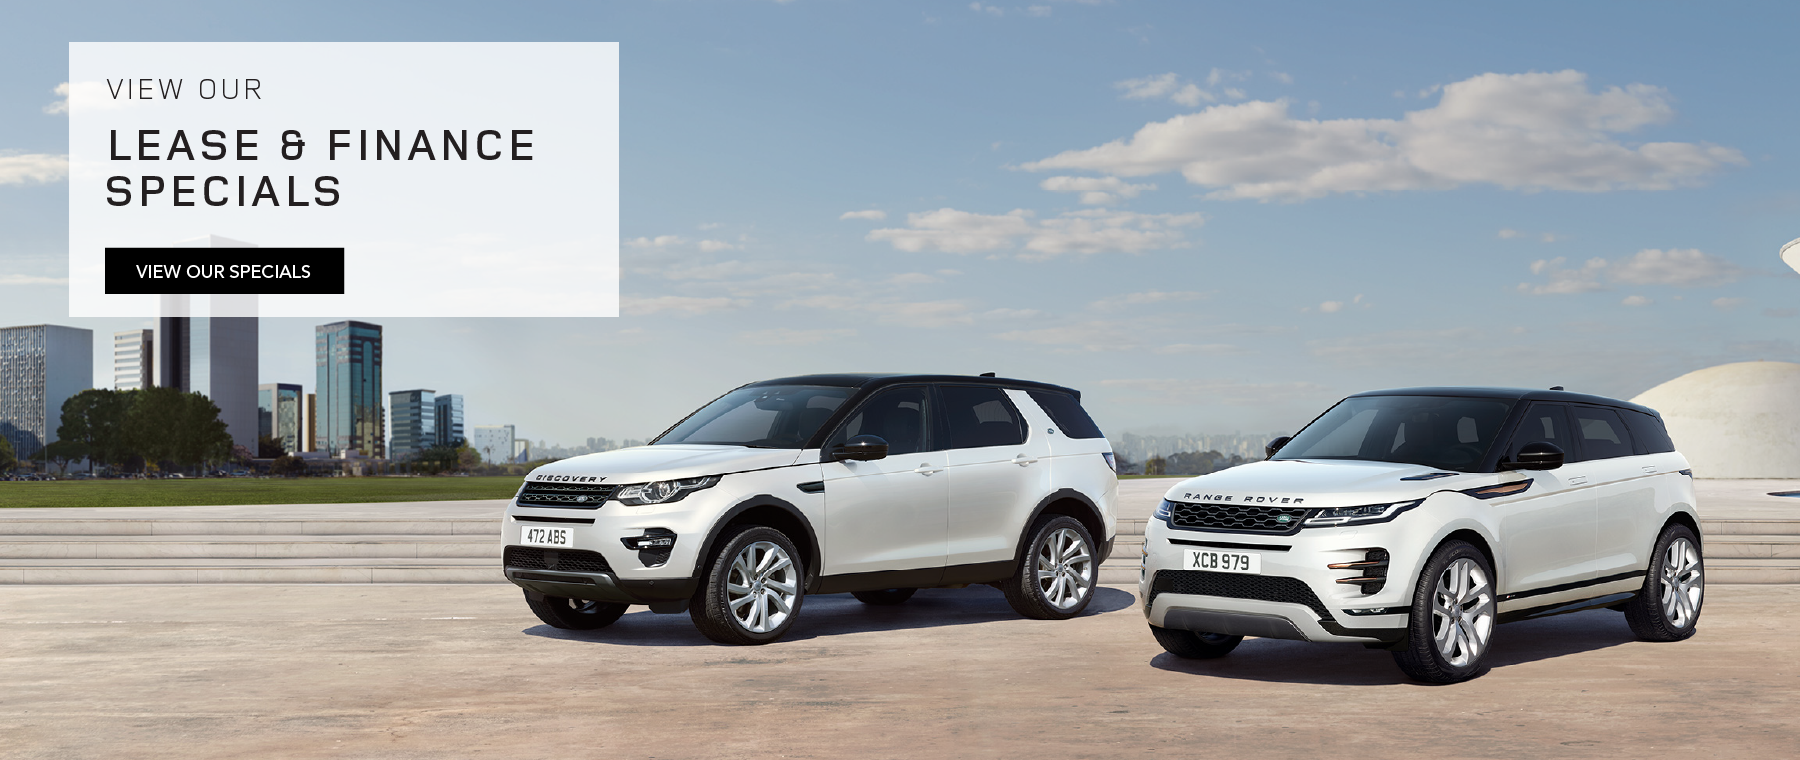 LAND ROVER DISCOVERY SPORT AND RANGE ROVER EVOQUE PARKED ON CENTER WITH GRASS, CLOUDY BLUE SKIES AND CITY SKYLINE IN BACKGROUND. VIEW OUR LEASE AND FINANCE SPECIALS. VIEW OUR SPECIALS.